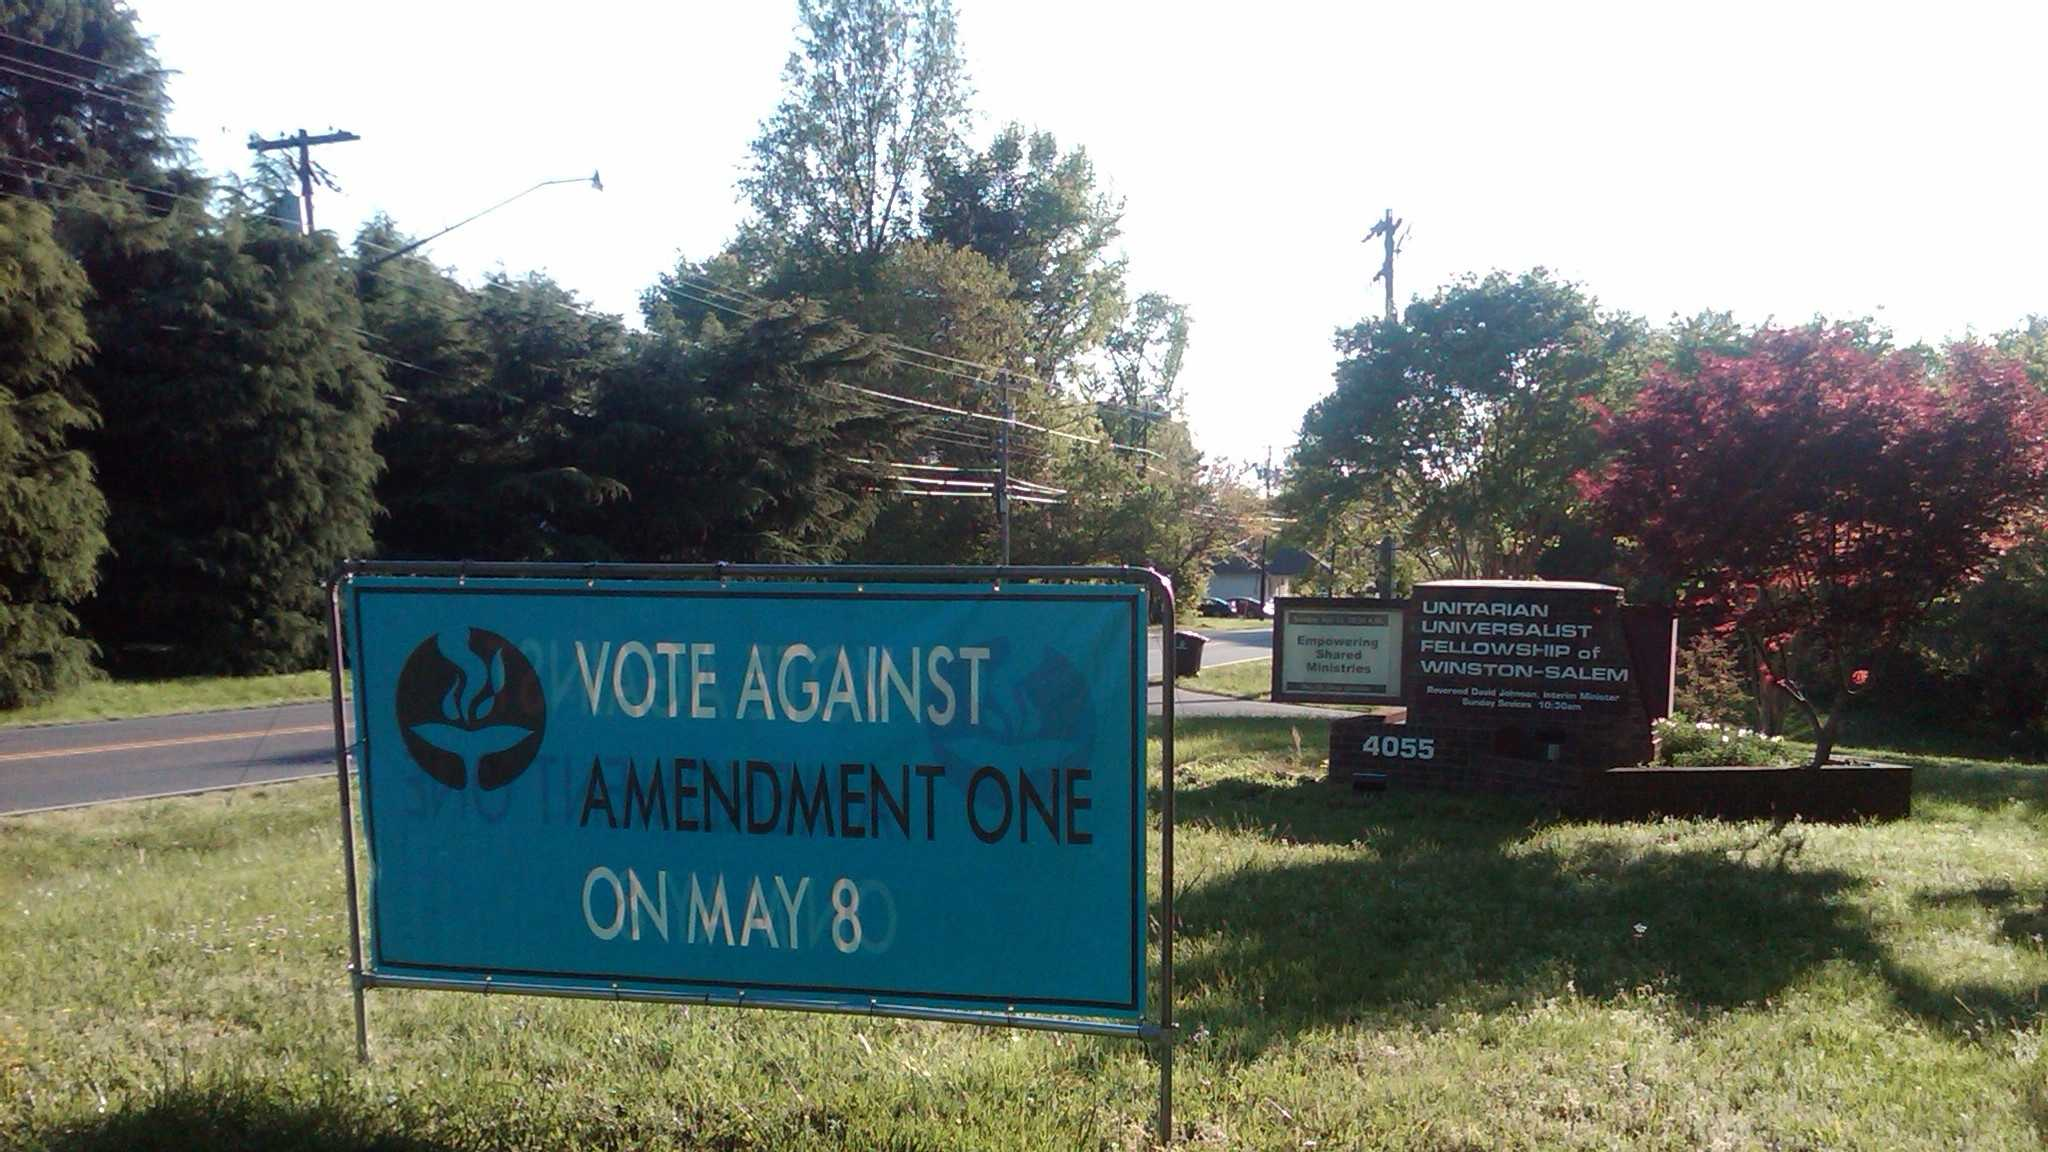 Church's Amendment One sign stolen